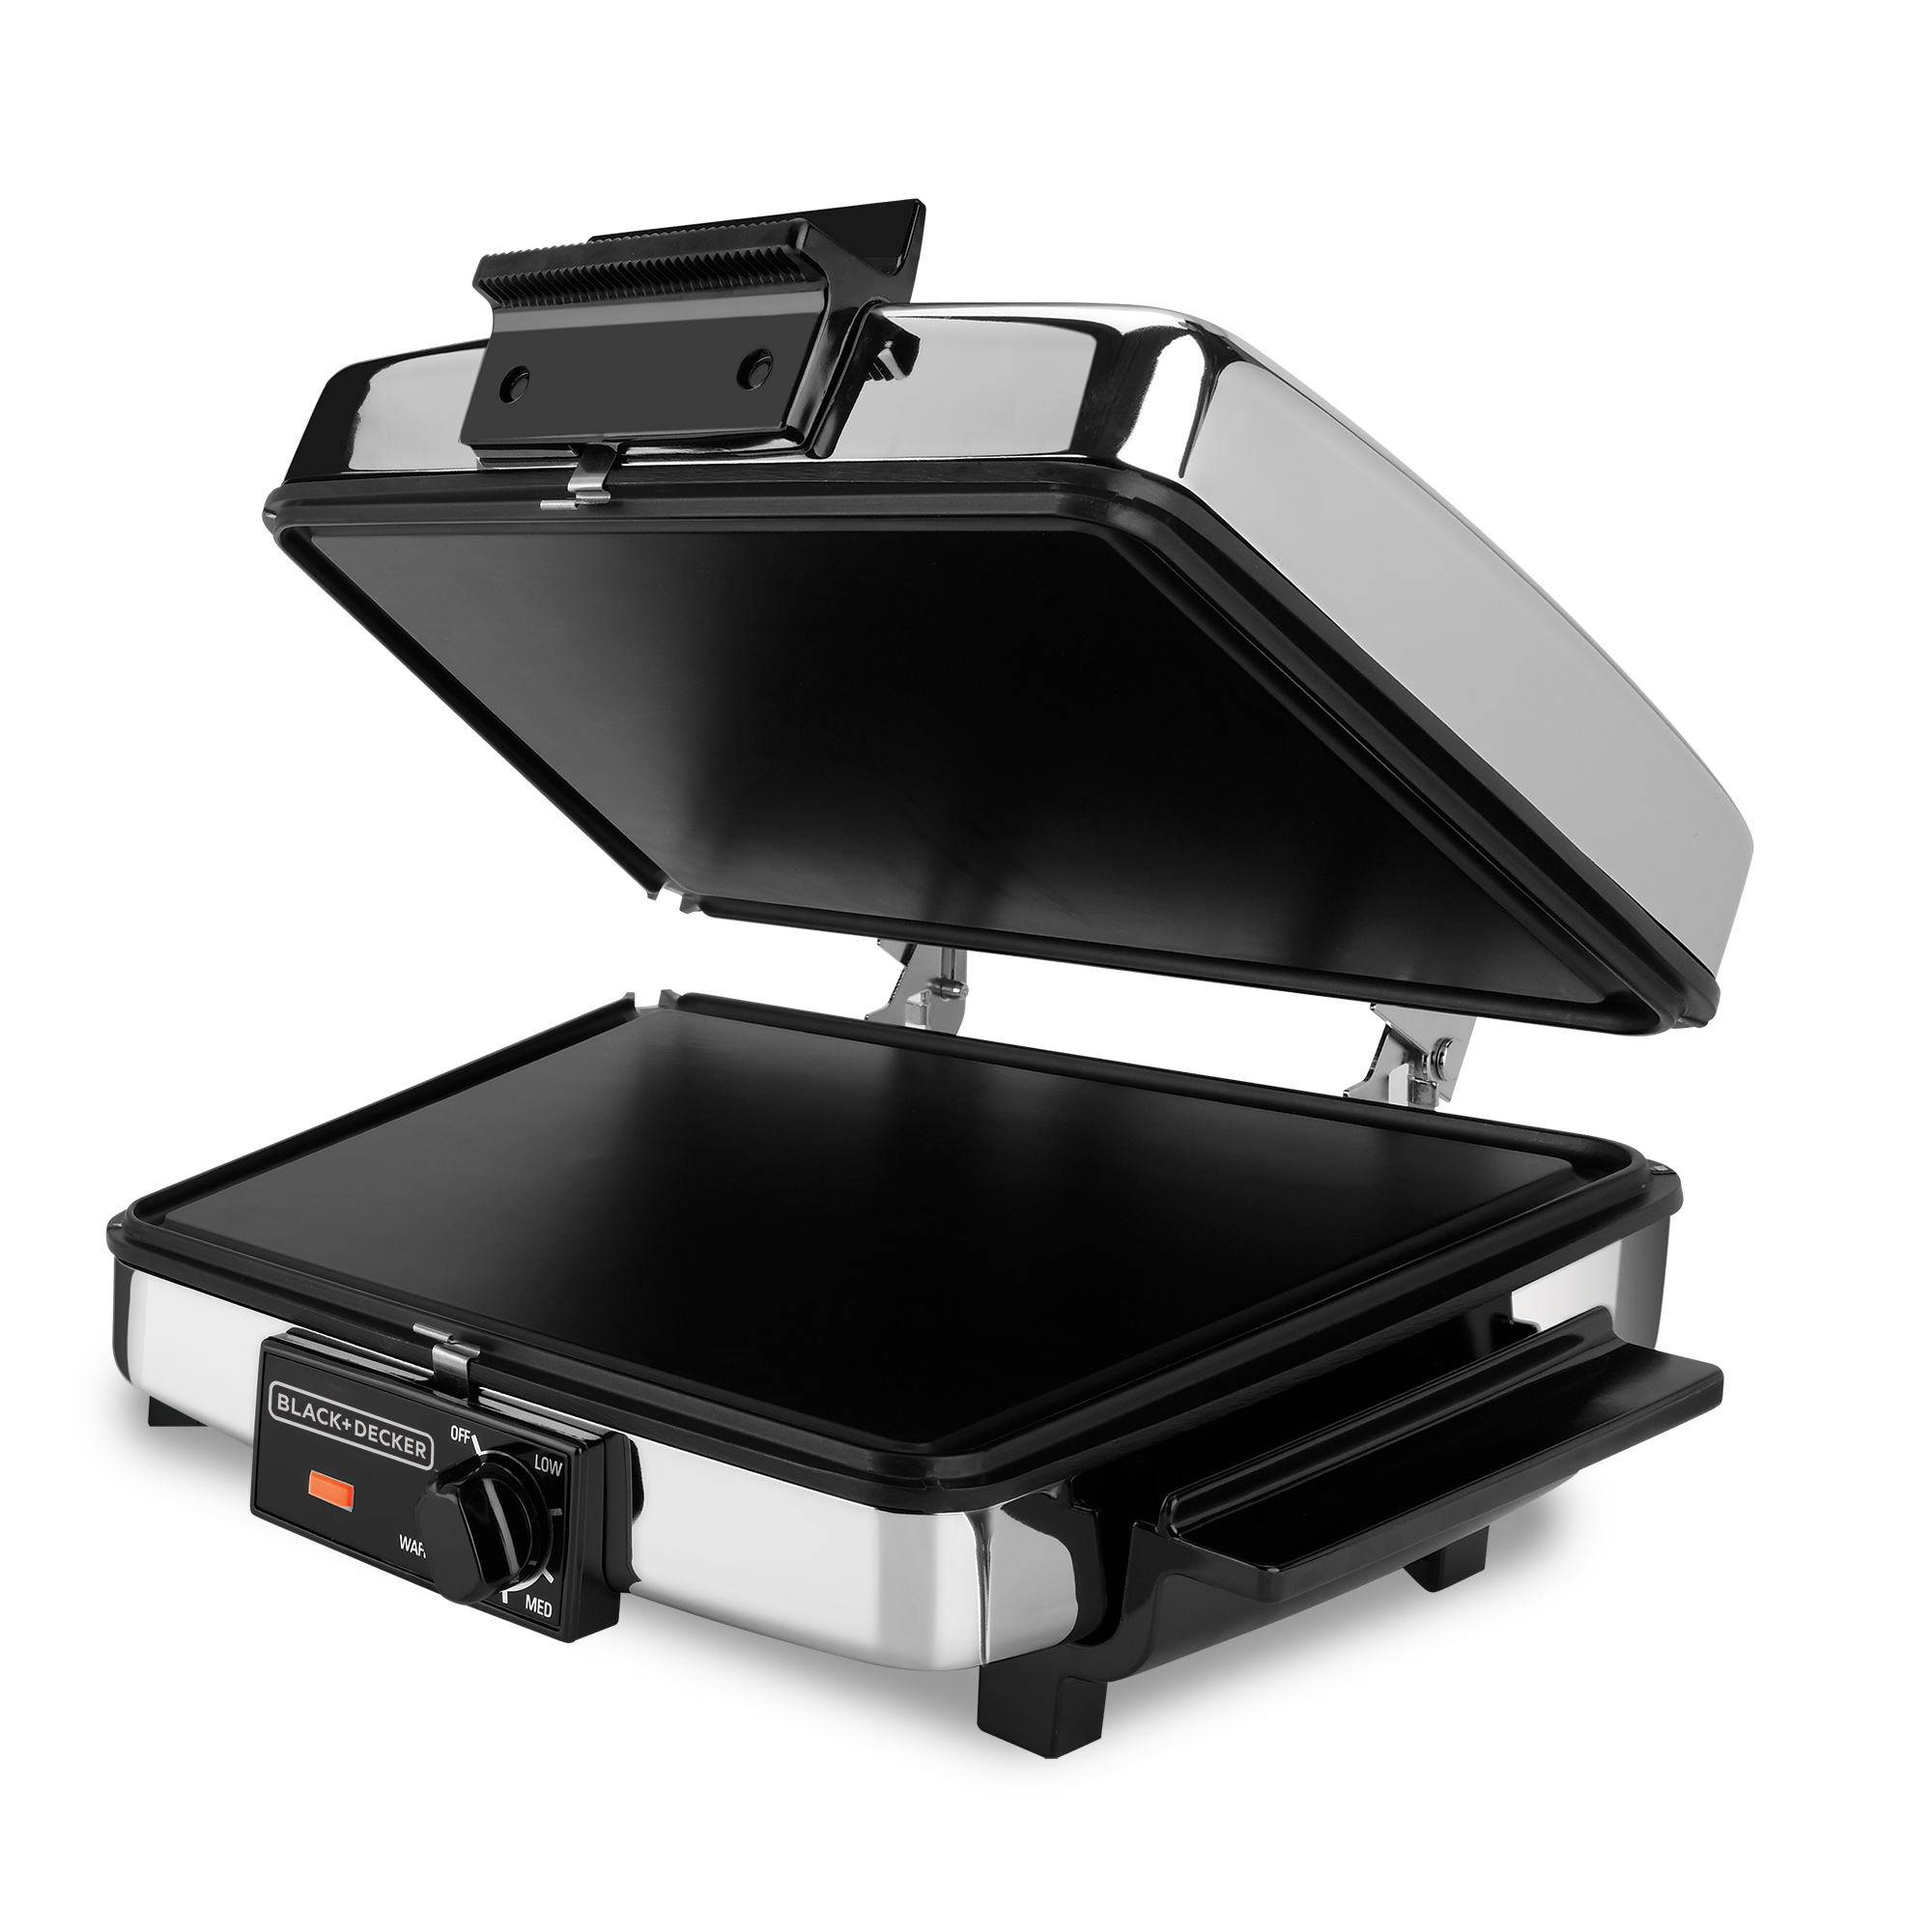 BLACK+DECKER 3-in-1 Waffle Maker & Indoor Grill, Griddle, G48TD